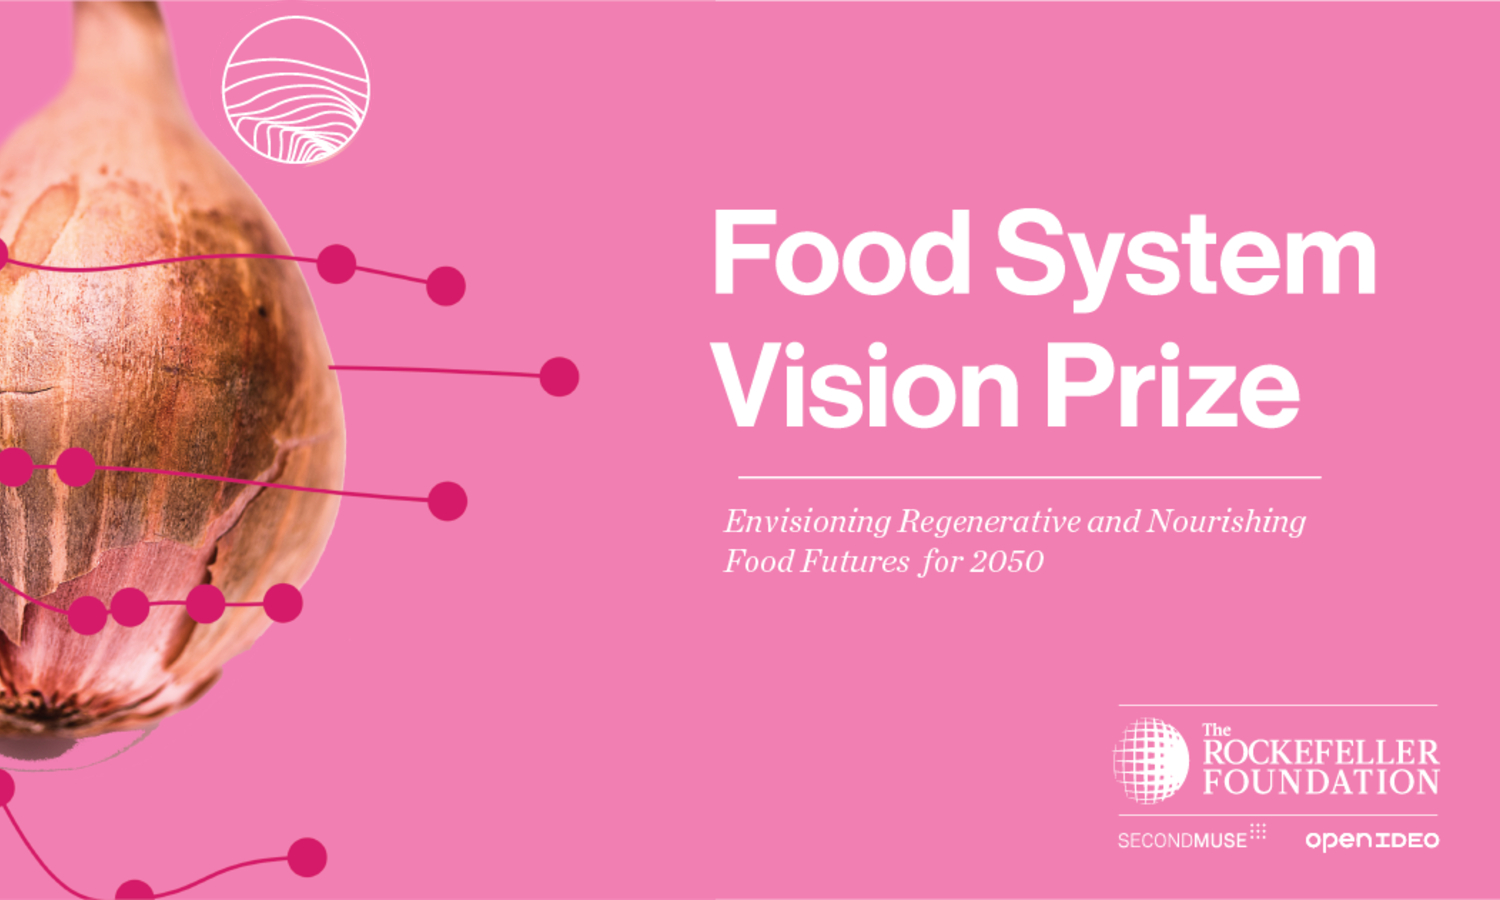 The prize, launched by the Rockefeller Foundation, will support inspiring visions for how the food system can look in 2050.